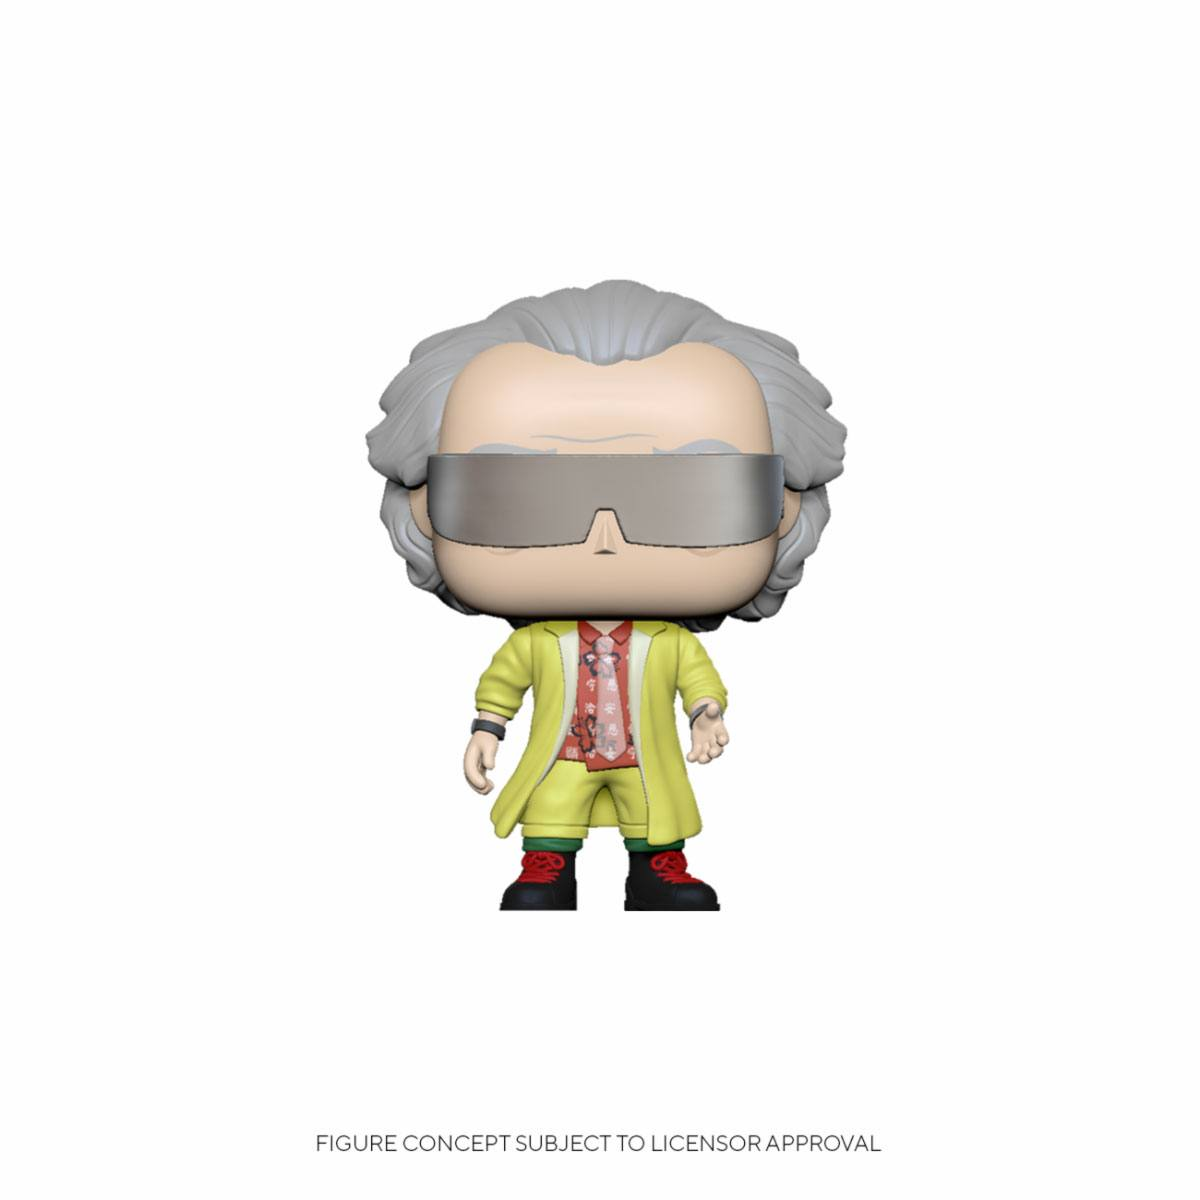 POP! MOVIES #??? PVC BACK TO THE FUTURE DOC 2015